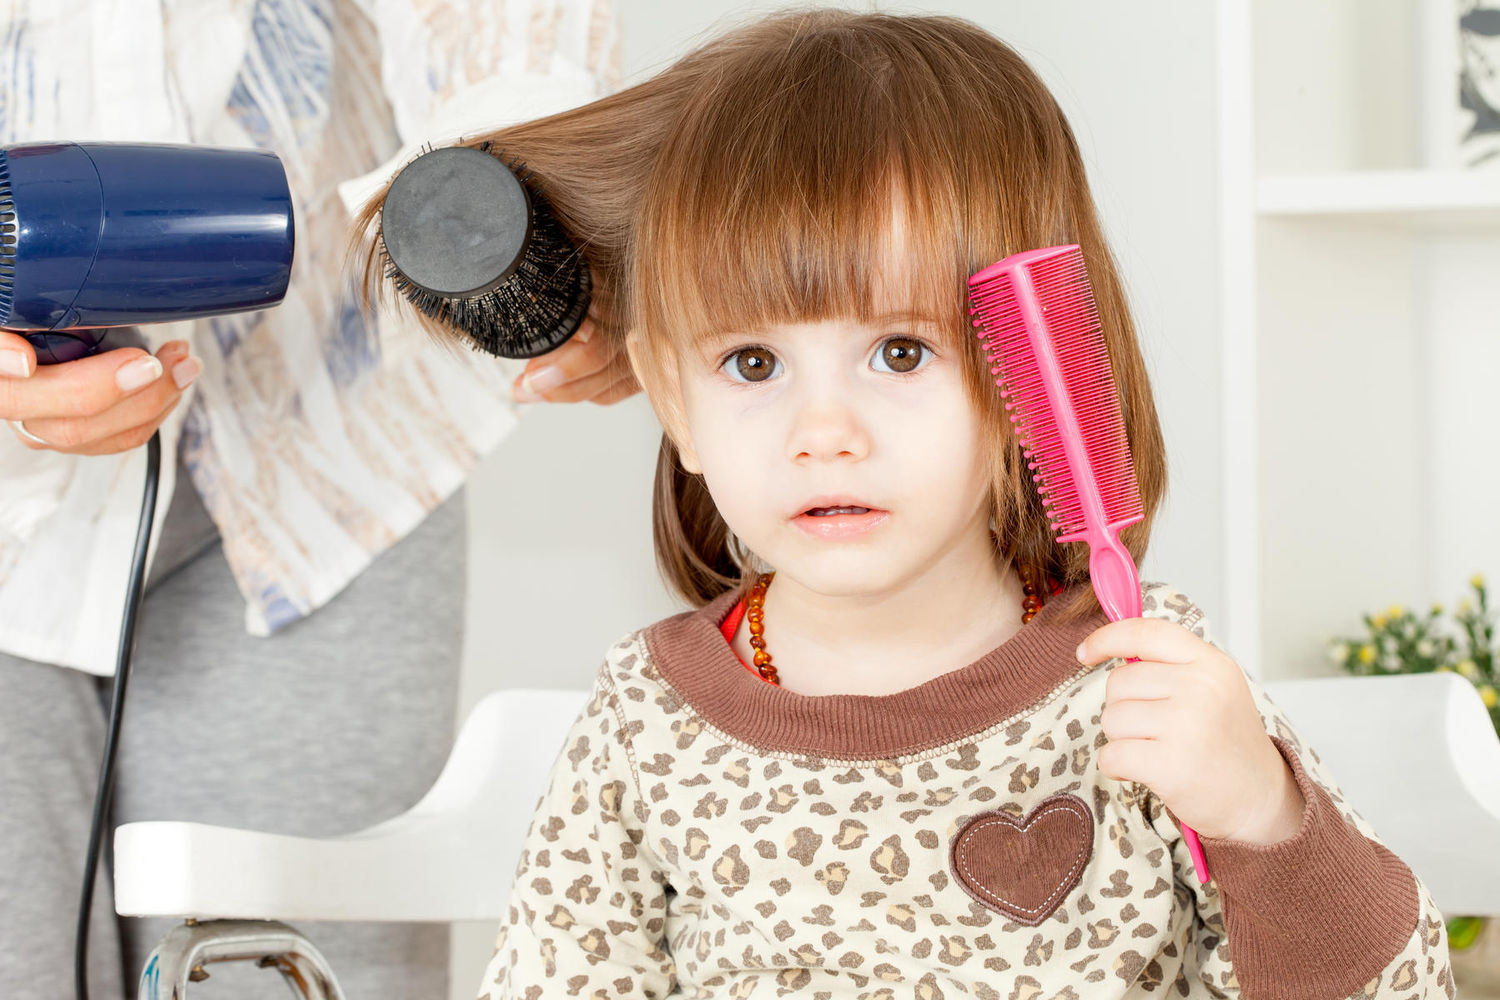 Toddler Hair Style: 6 Tricks For Managing Baby Grooming